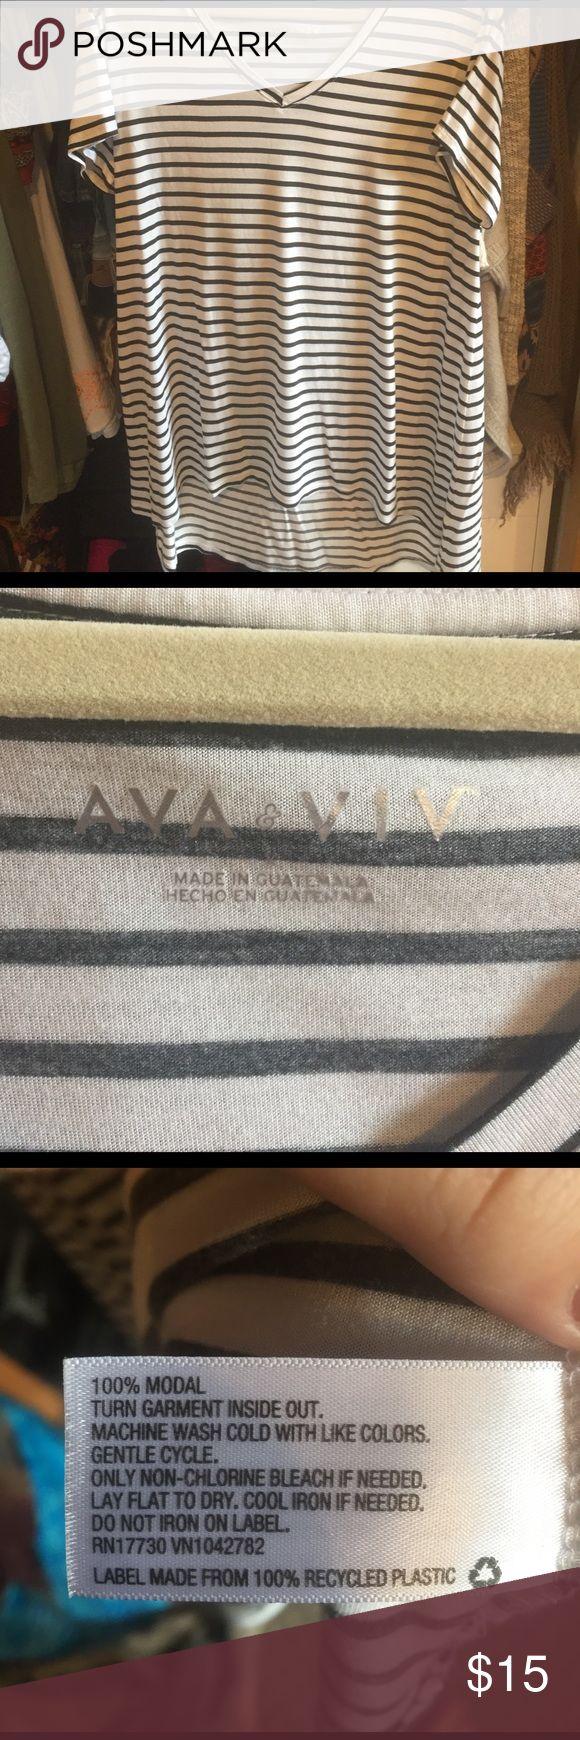 Black and white striped T-shirt 1X Ava and Viv 1X black and white striped T-shirt V-neck with a longer back extremely soft never worn without tag target AVA & VIV Tops Tees - Short Sleeve